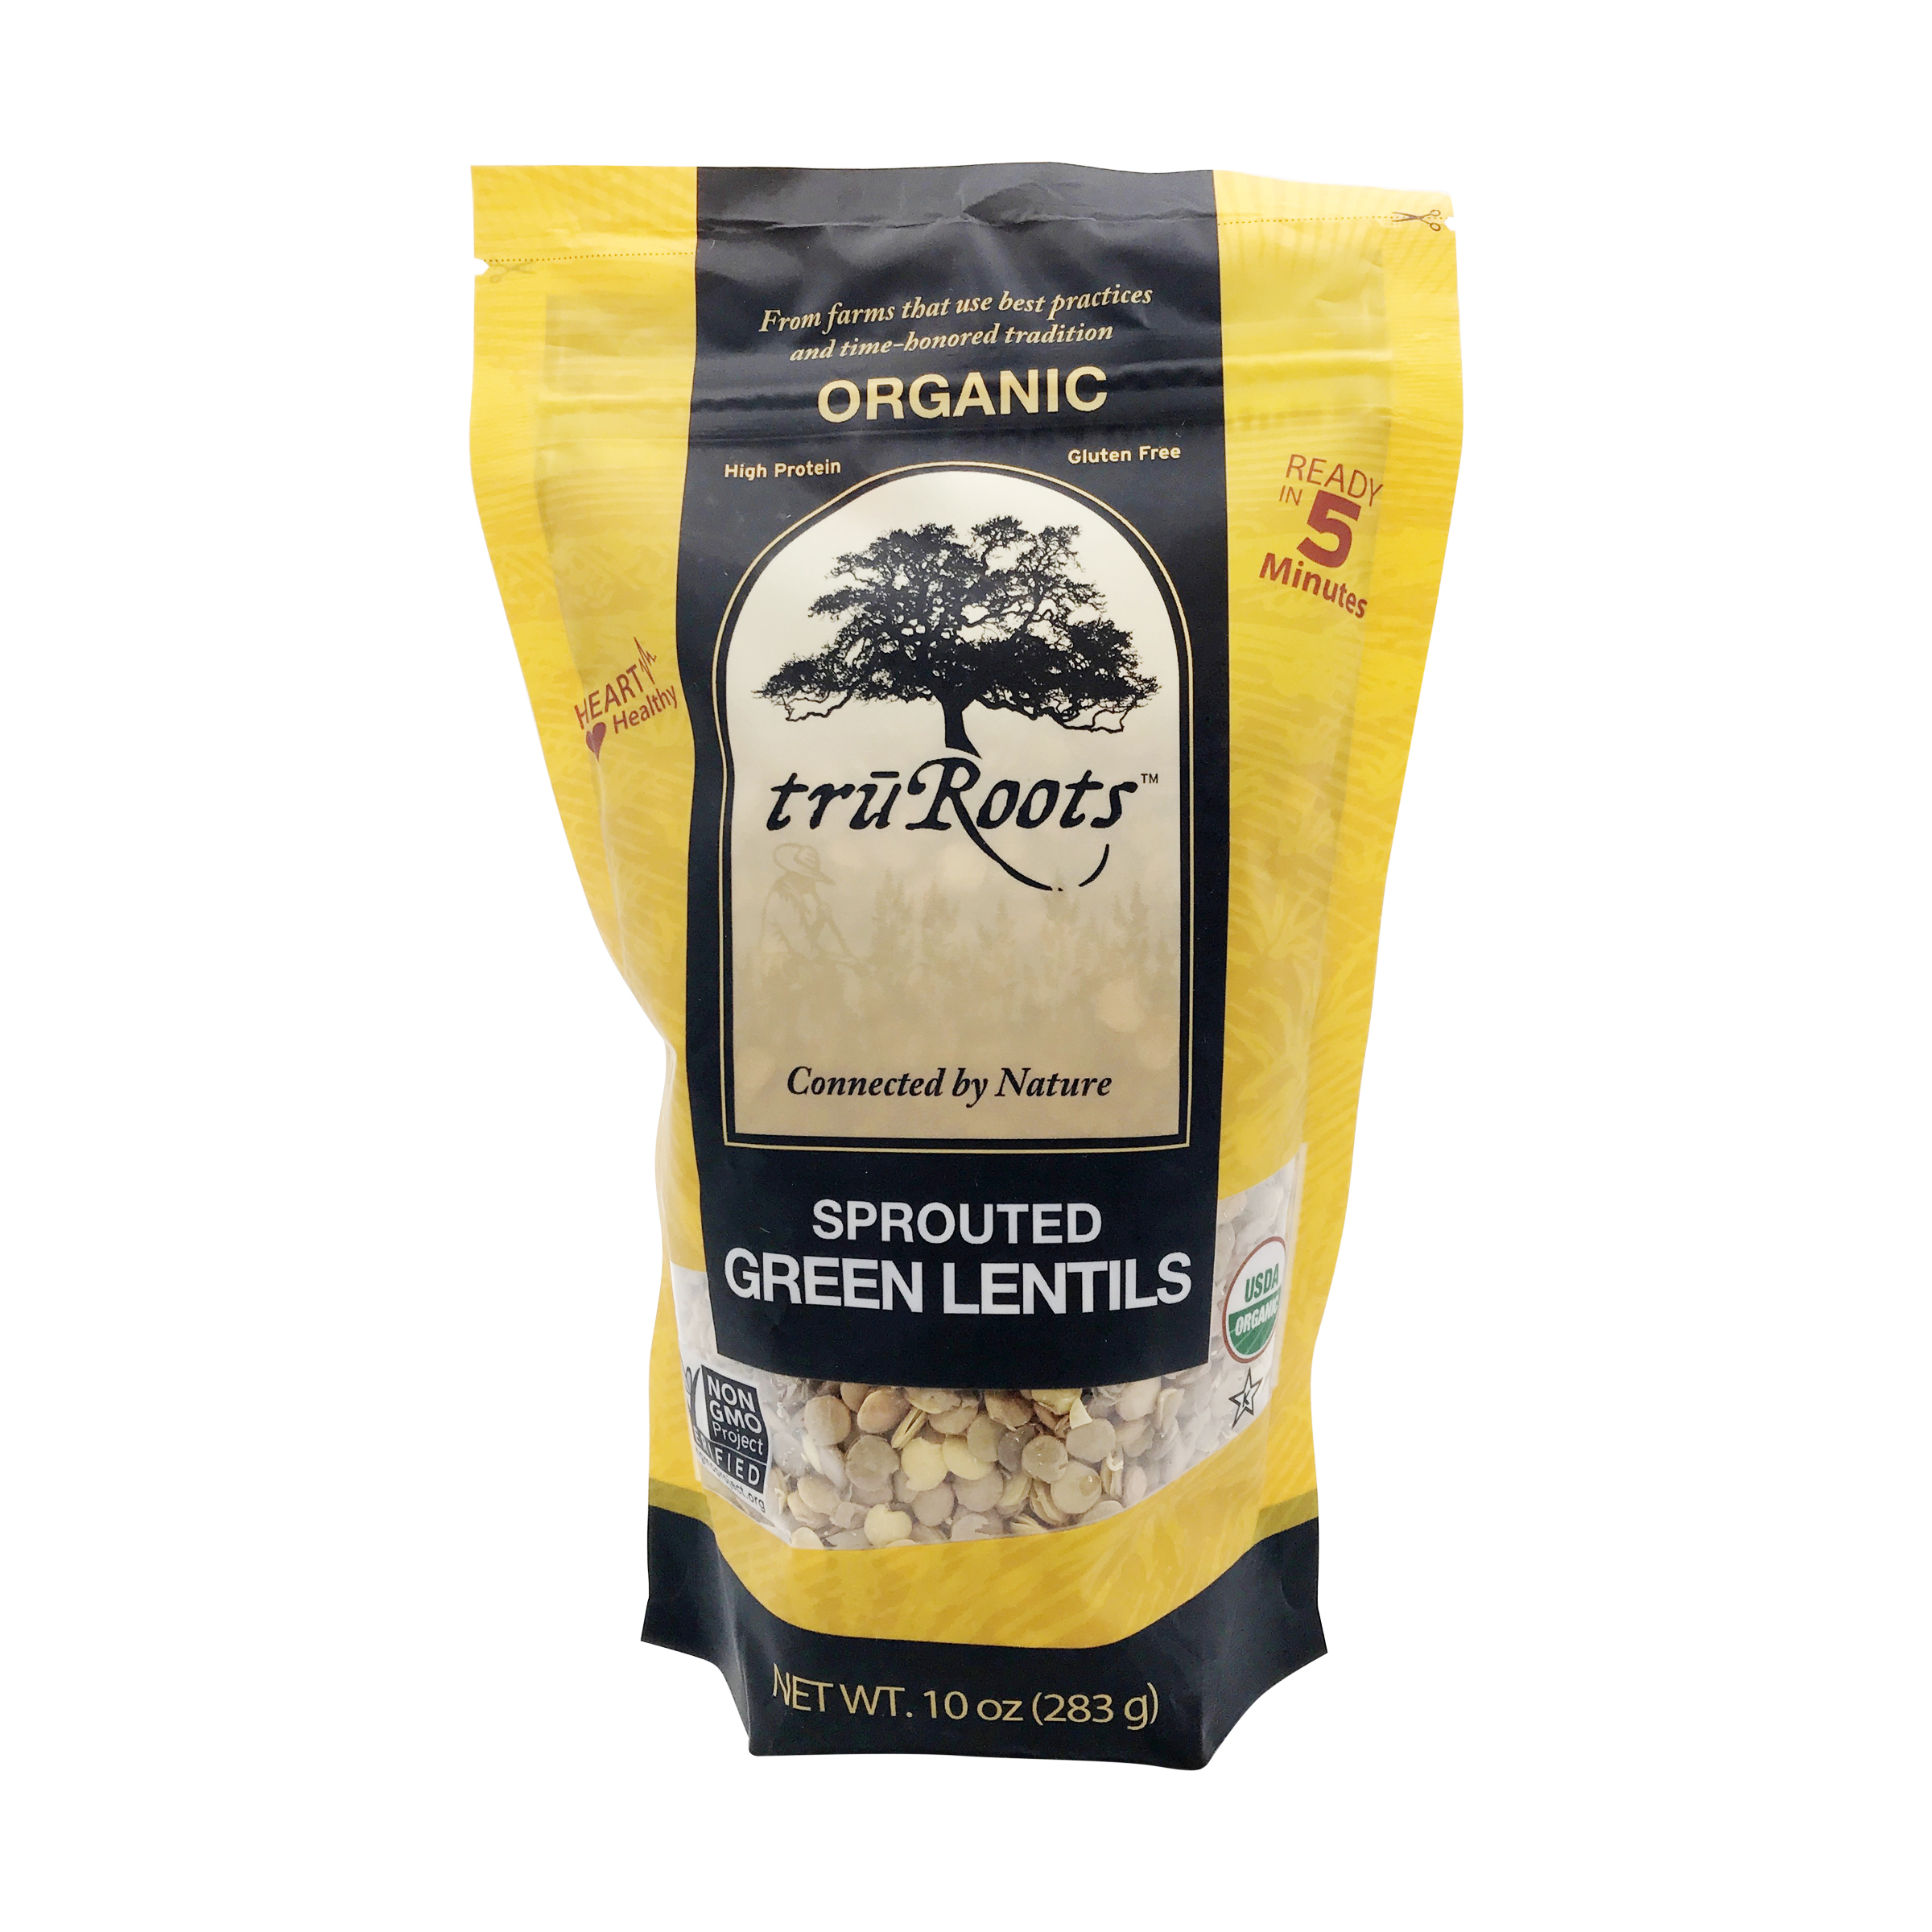 Organic Sprouted Green Lentils, 10 oz, truRoots | Whole